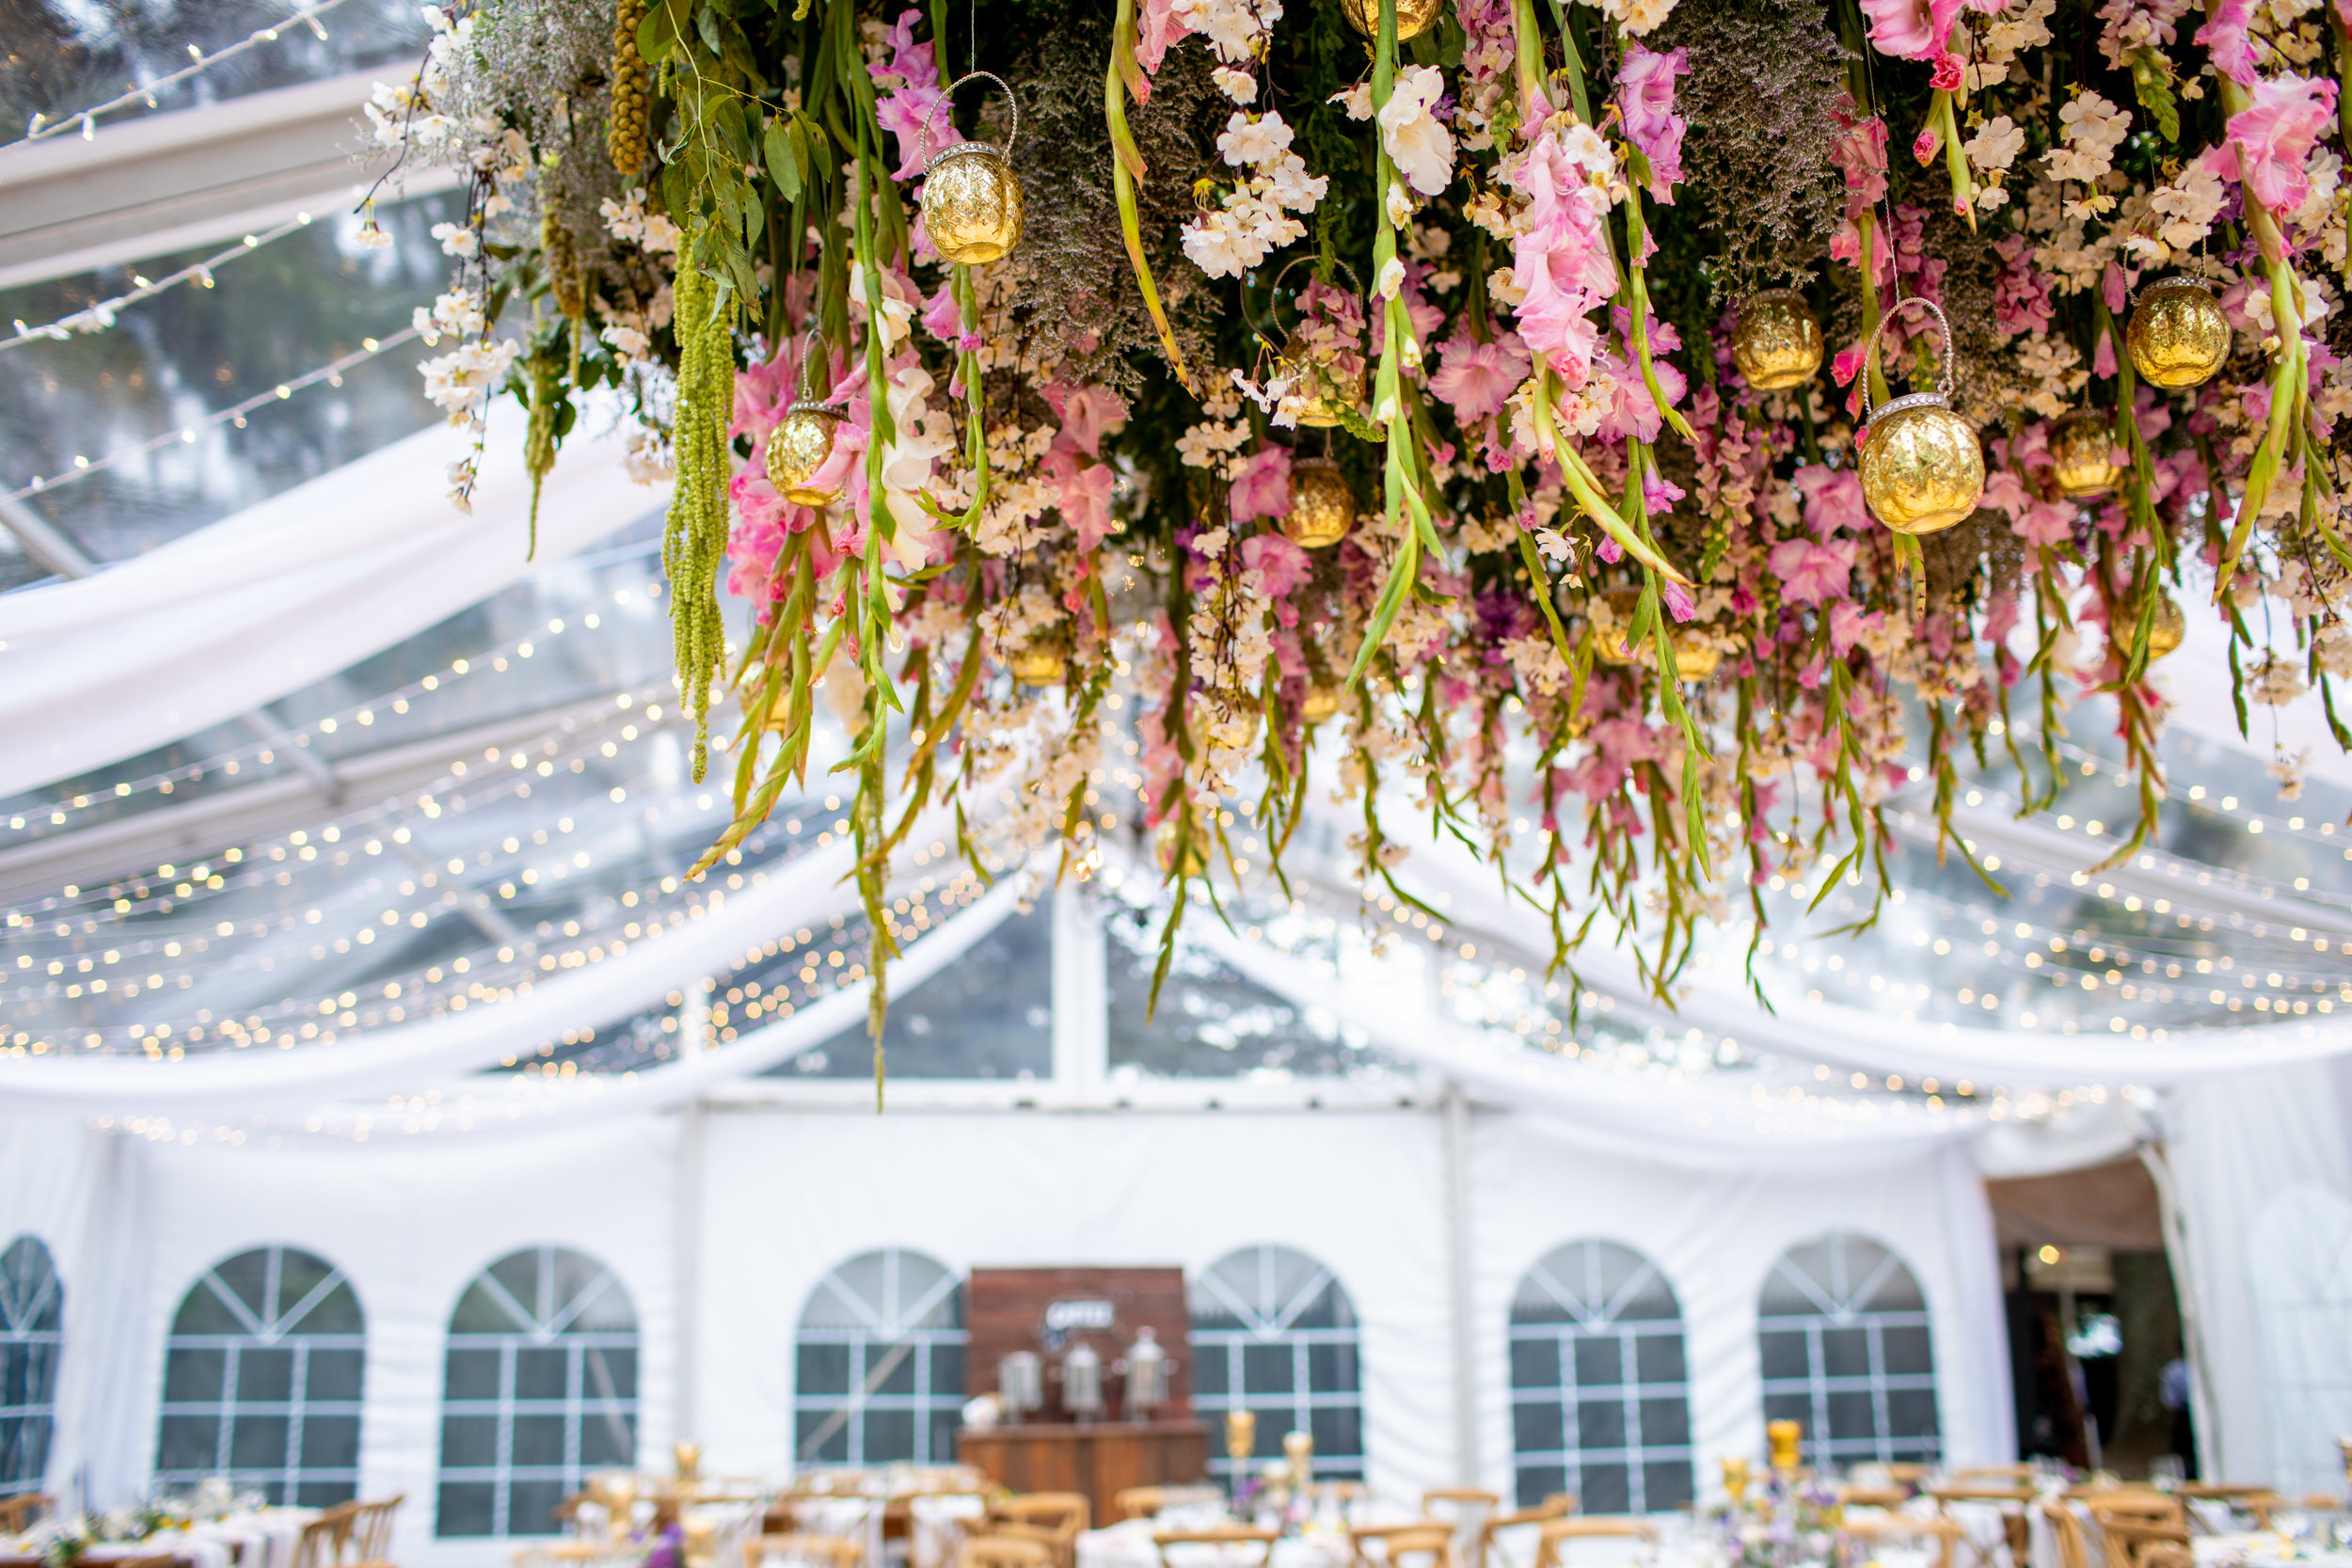 Inn at Fernbrook Wedding, Hanging Chandelier, Hanging Decor, Tent Wedding, Blush Wedding, Colorful Wedding, Drew Noel Photography